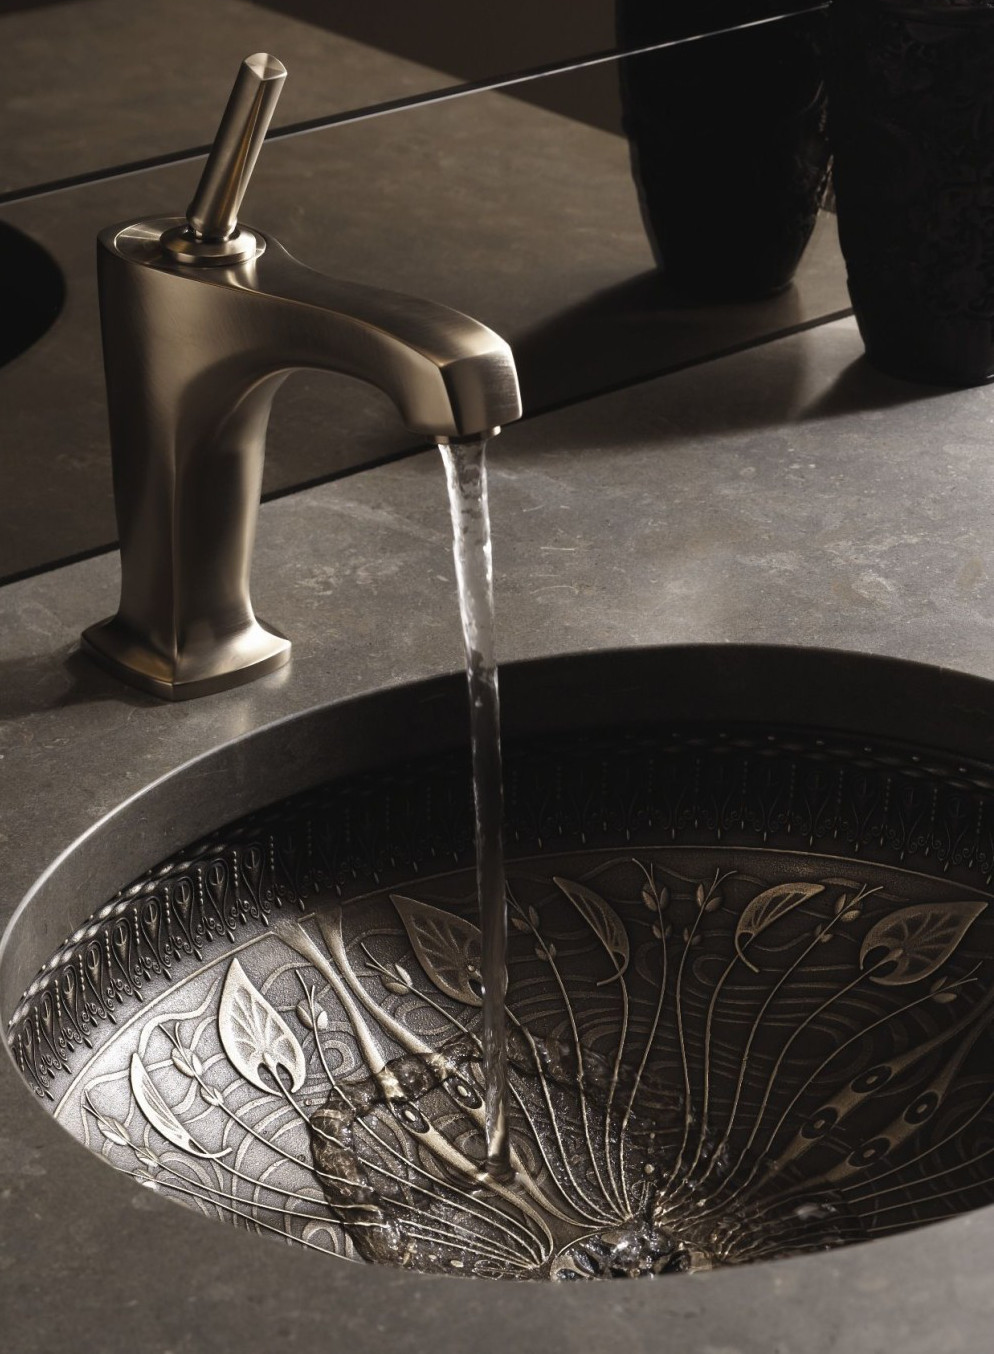 exotic bathroom sinks - Kohler Lilies Lore medium patina cast bronze sink - Kohler via Atticmag